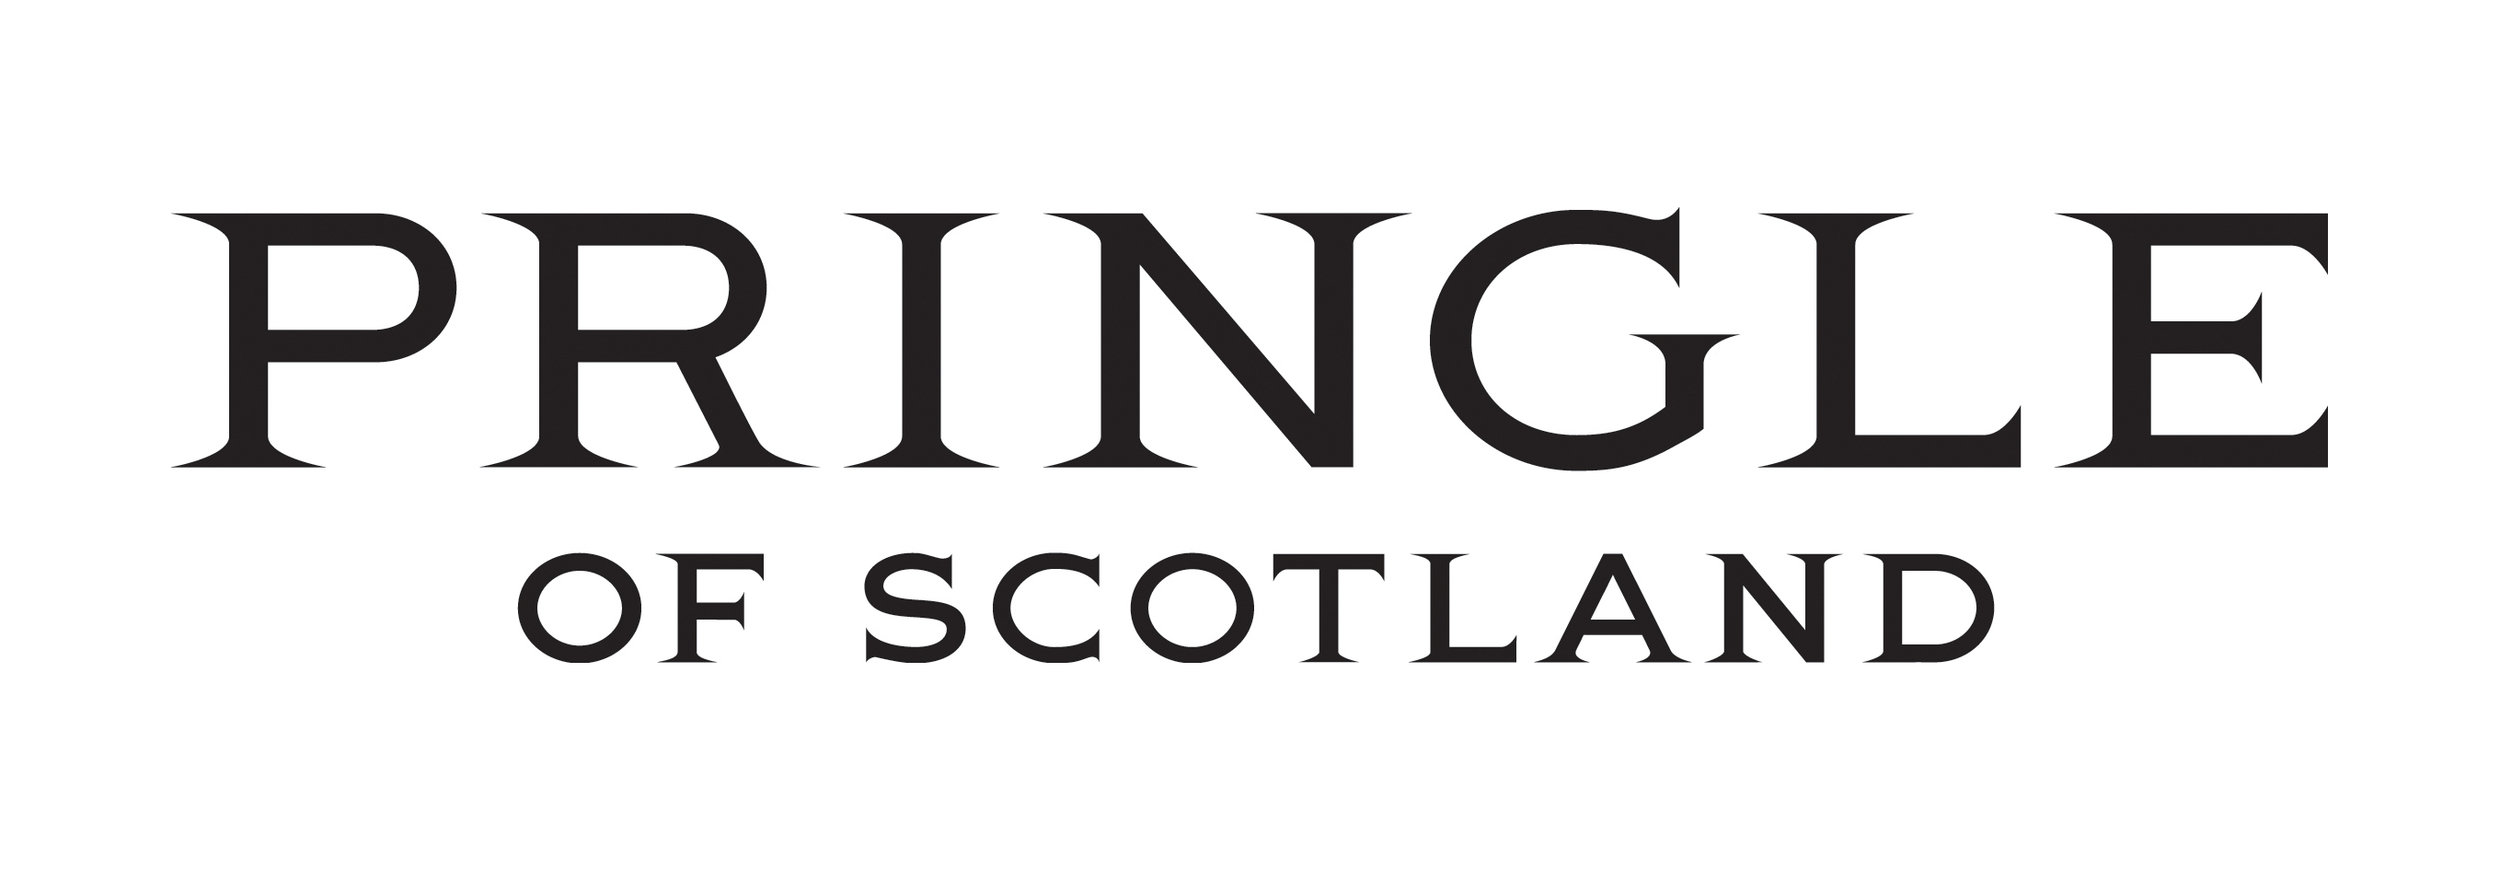 pringle-of-scotland_myshopify_com_logo.jpg